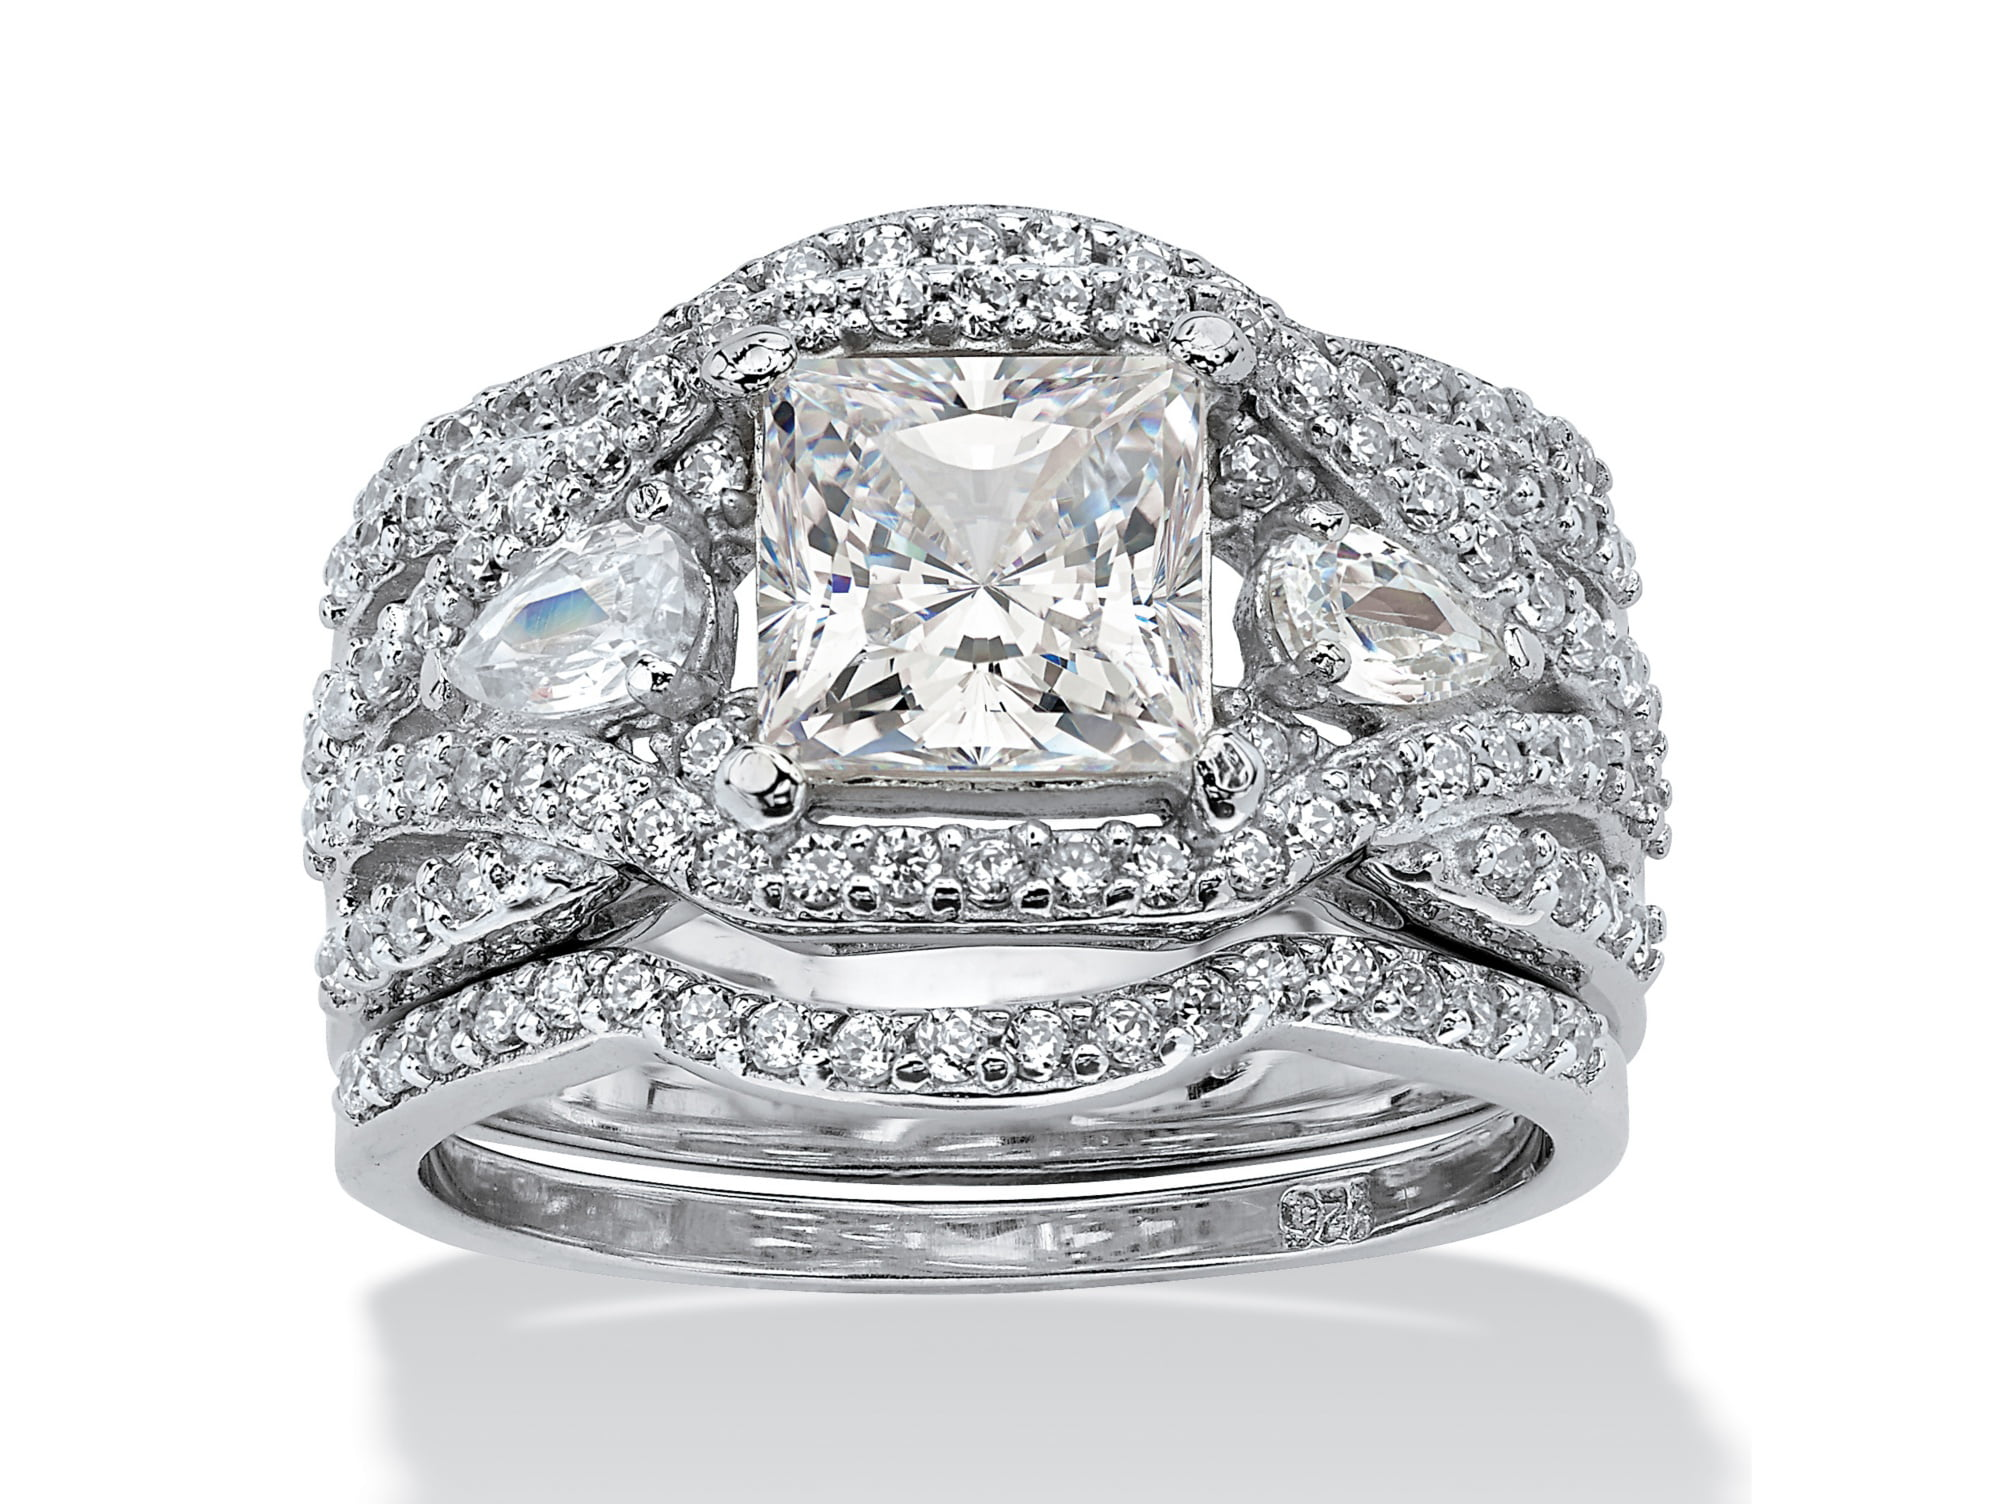 3.12 TCW Princess-Cut Cubic Zirconia Platinum over Silver 3-Piece Crossover Bridal Ring Set by PalmBeach Jewelry